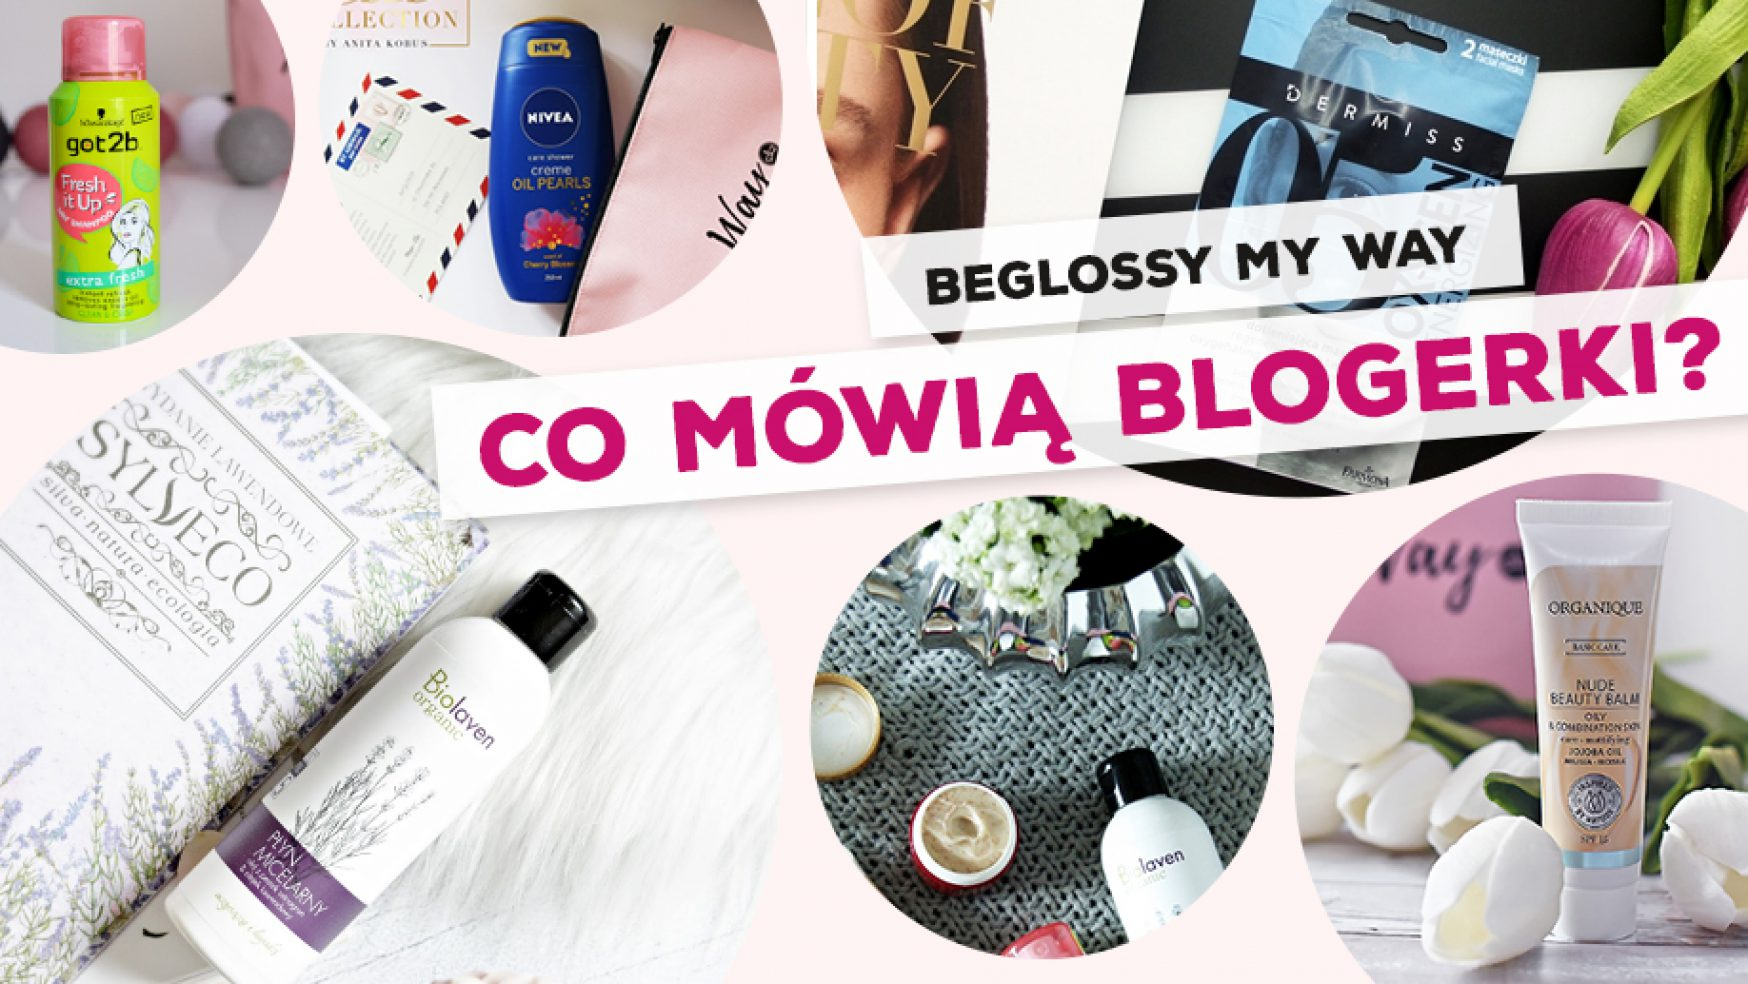 beGLOSSY My Way – Co mówią blogerki?